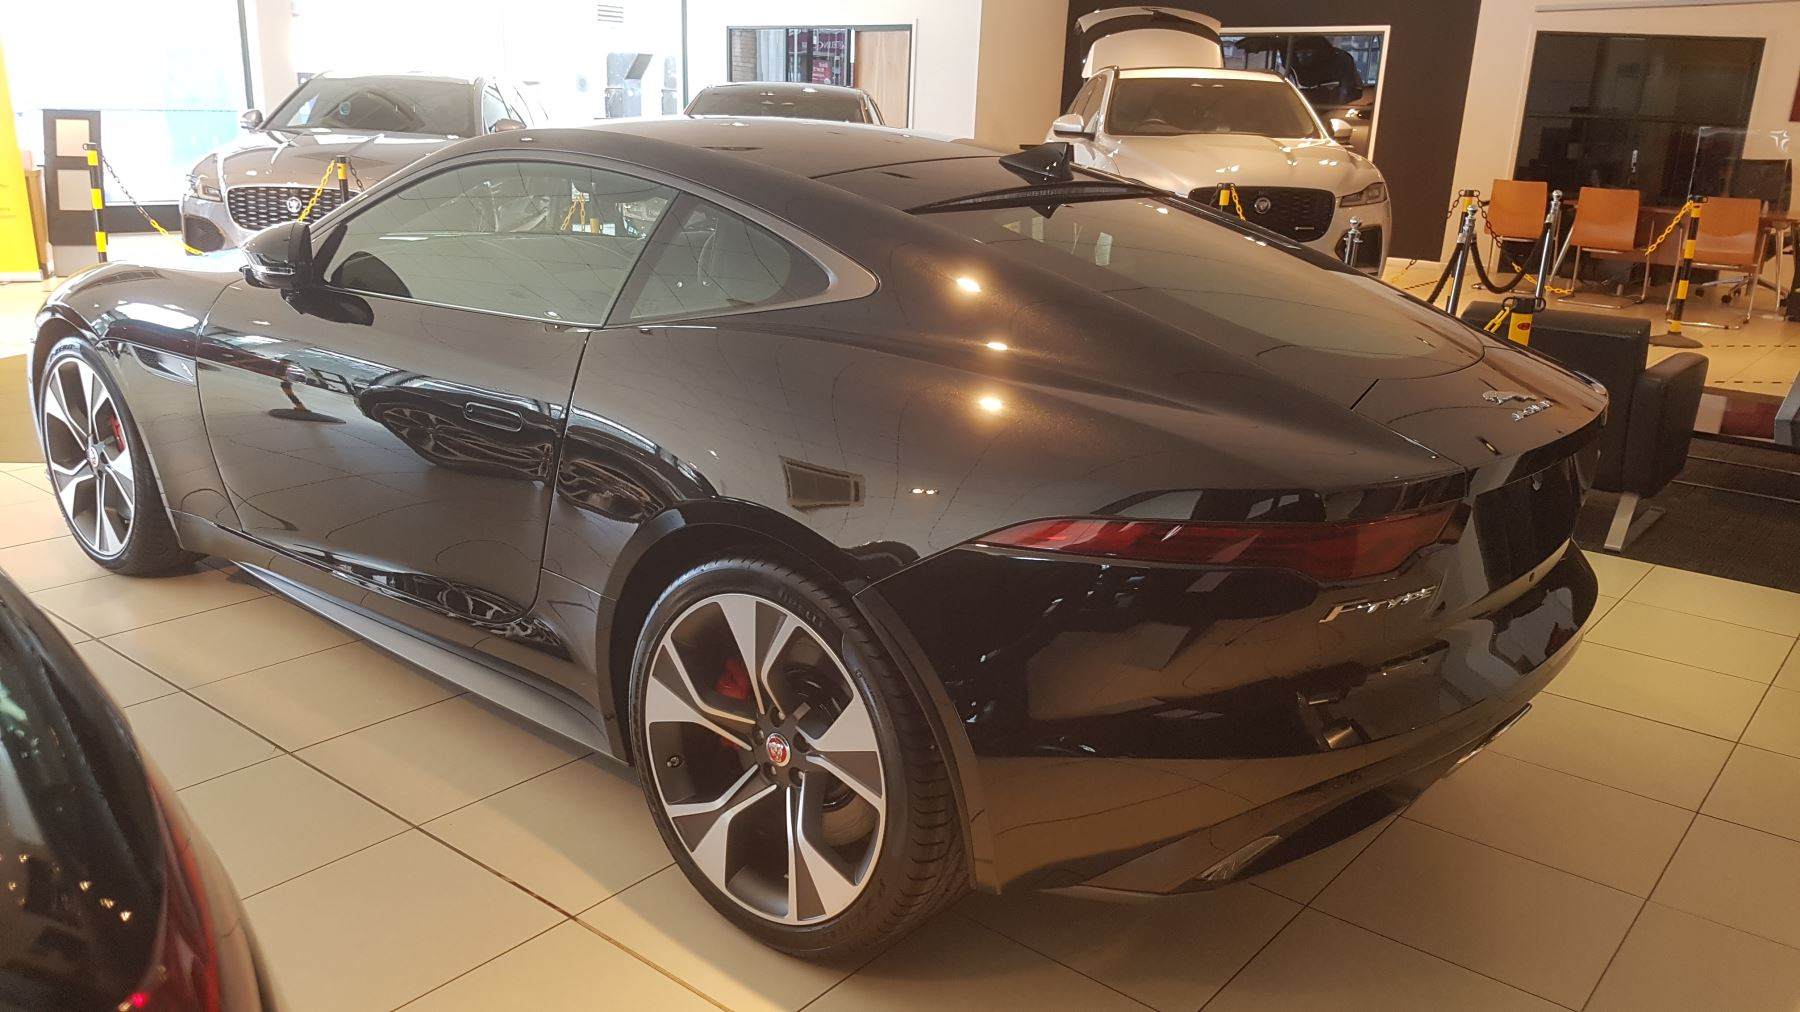 Jaguar F-TYPE 2.0 P300 First Edition SPECIAL EDITIONS image 3